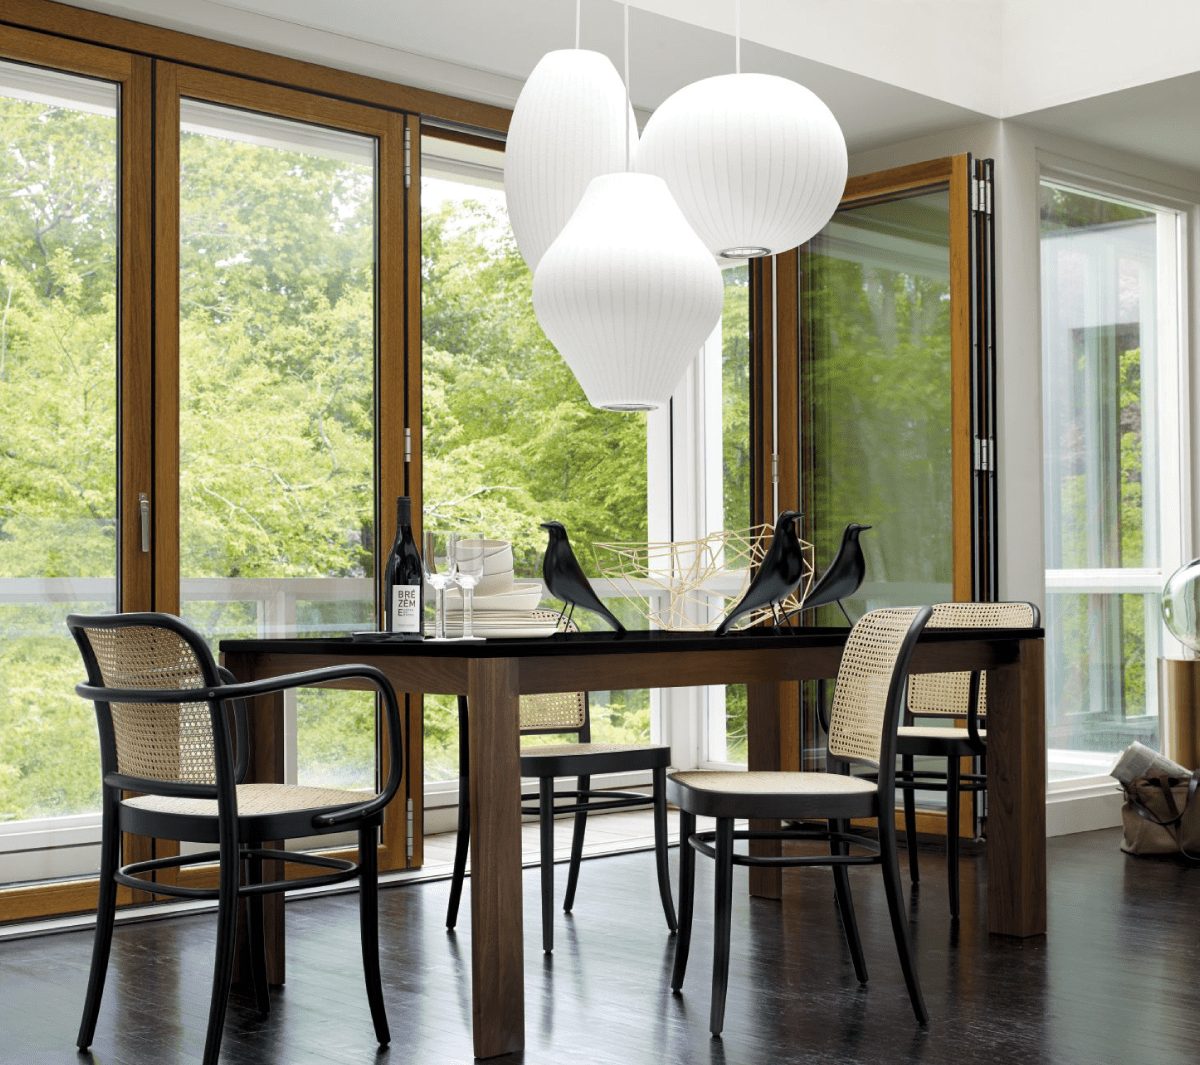 This Pendant Design Is A Stylish Illuminator Suited For Various Spaces In Homes Cafes And Offices Hay Nelson Ci In 2020 Dining Chair Design Eames House Chair Design